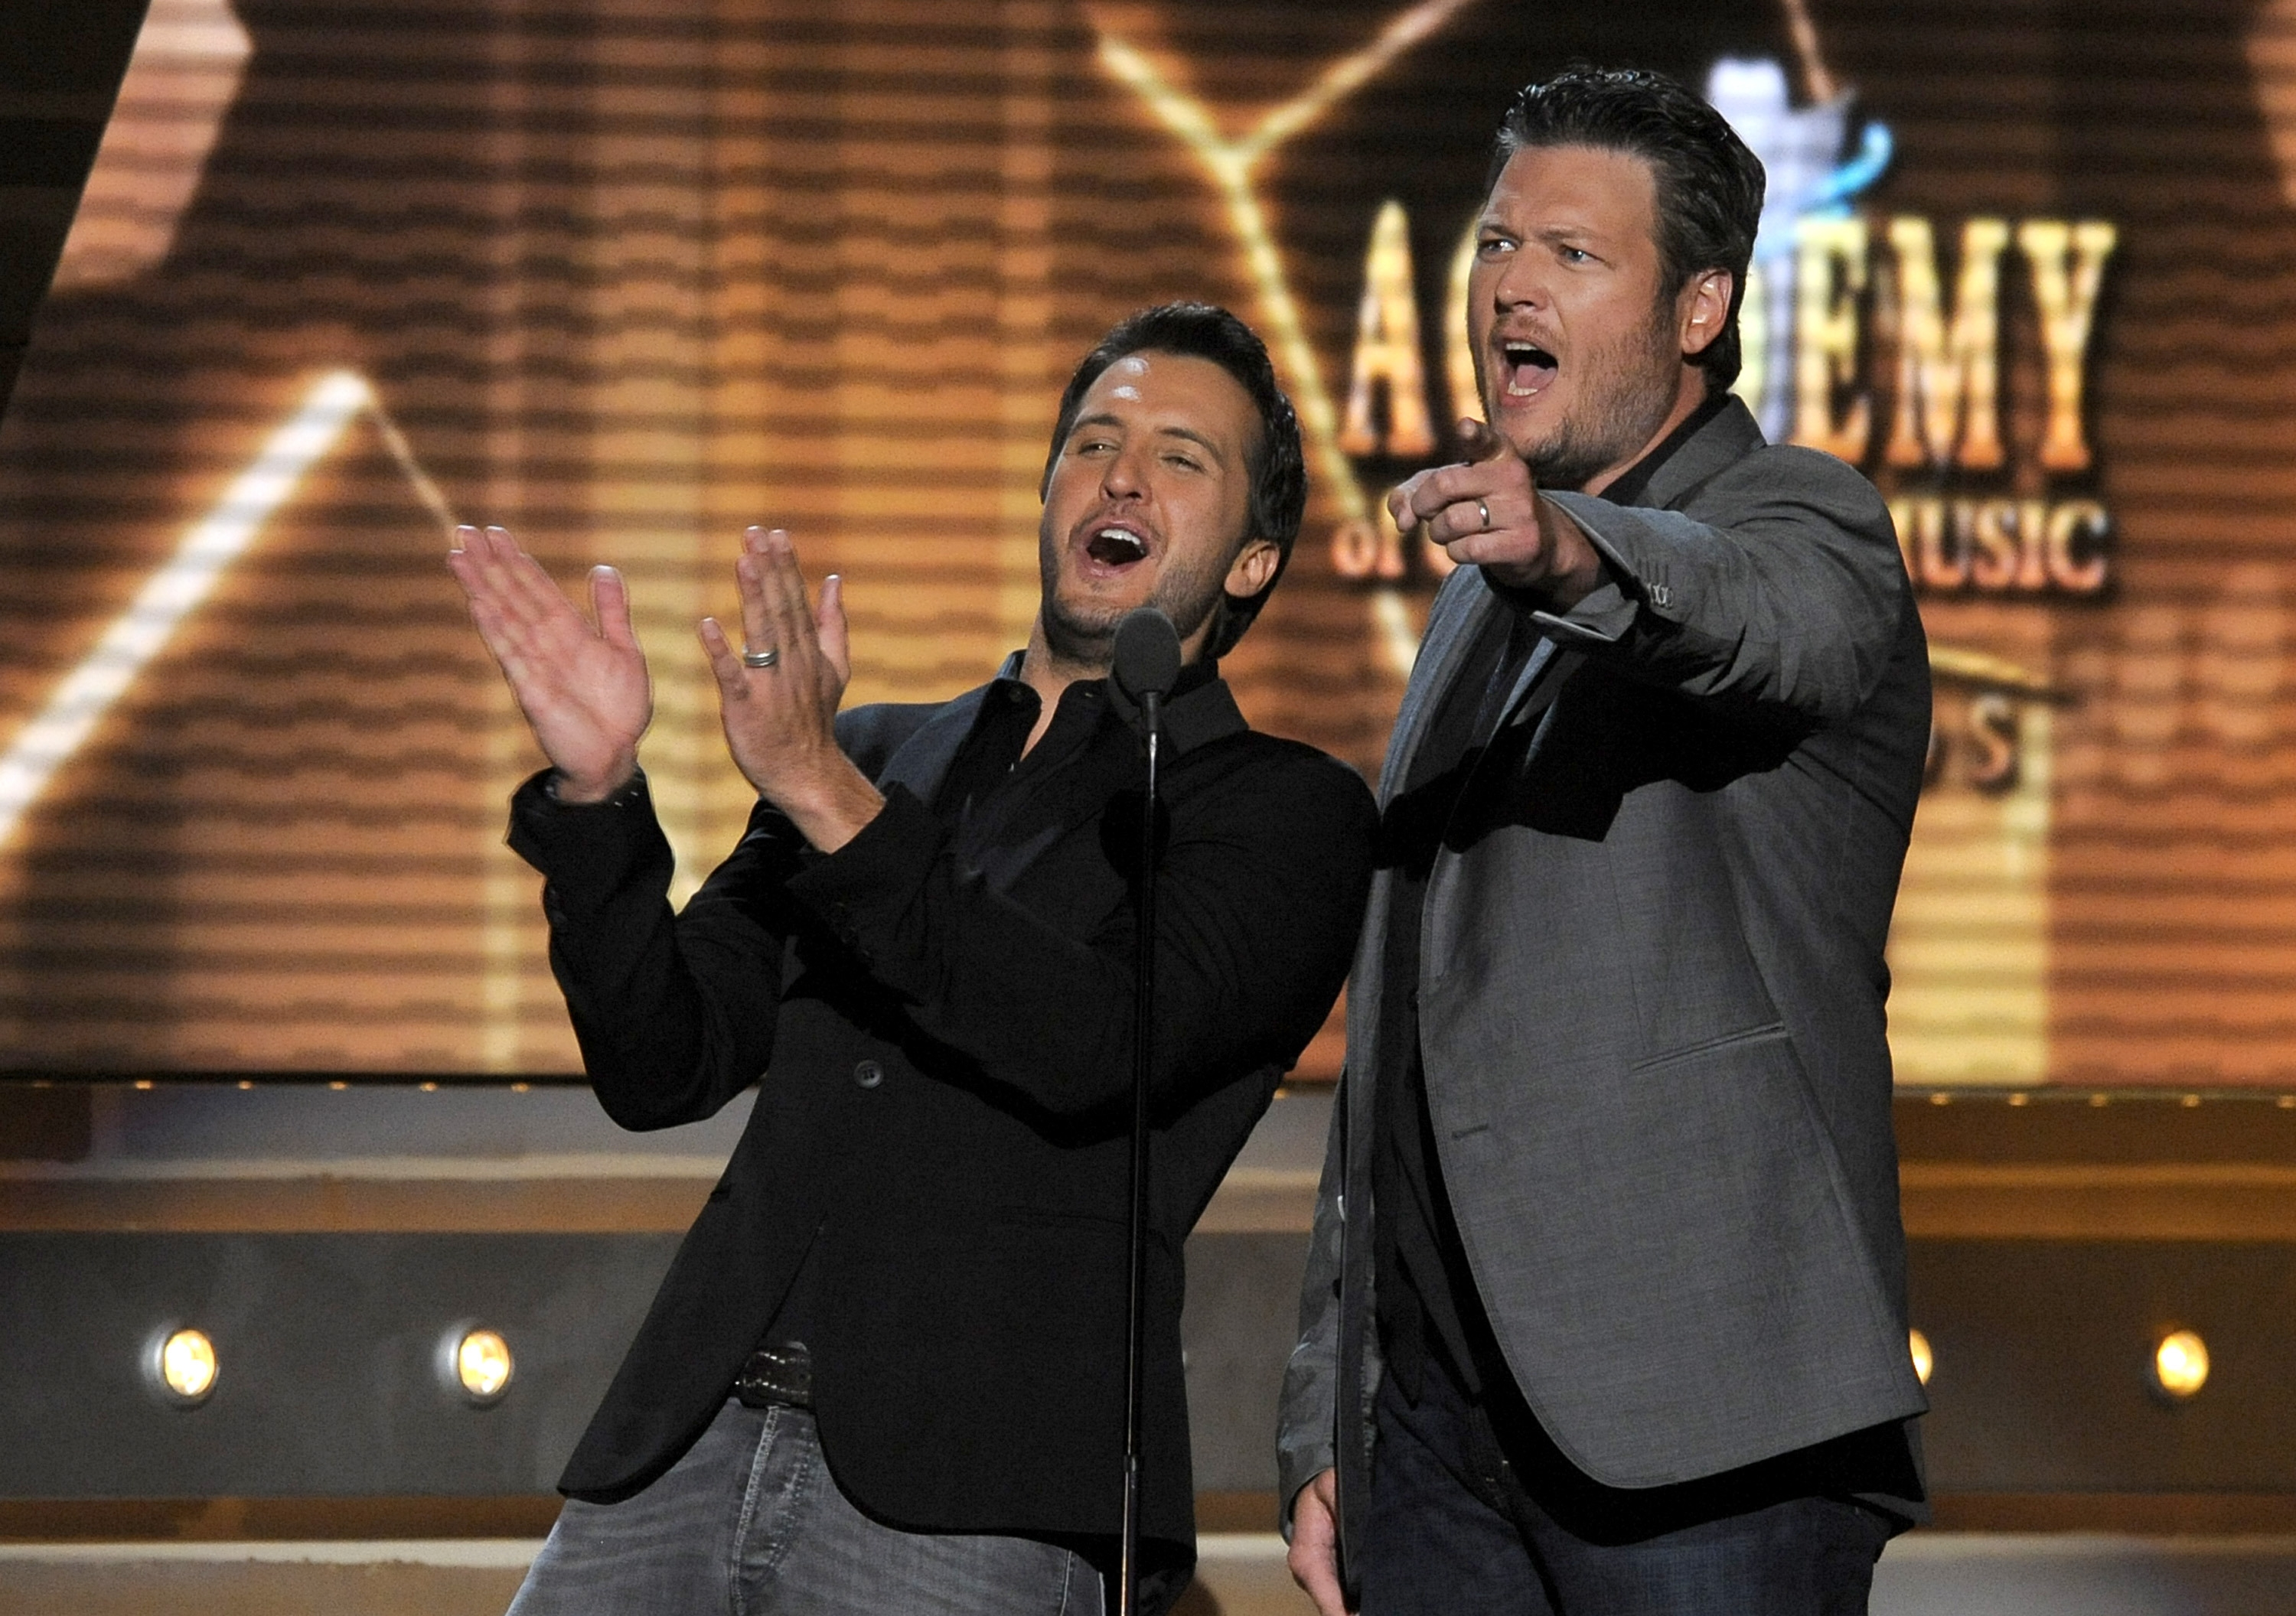 Luke Bryan, left, and Blake Shelton were such a hit at this year's Academy of Country Music Awards that they're coming back as hosts next year.